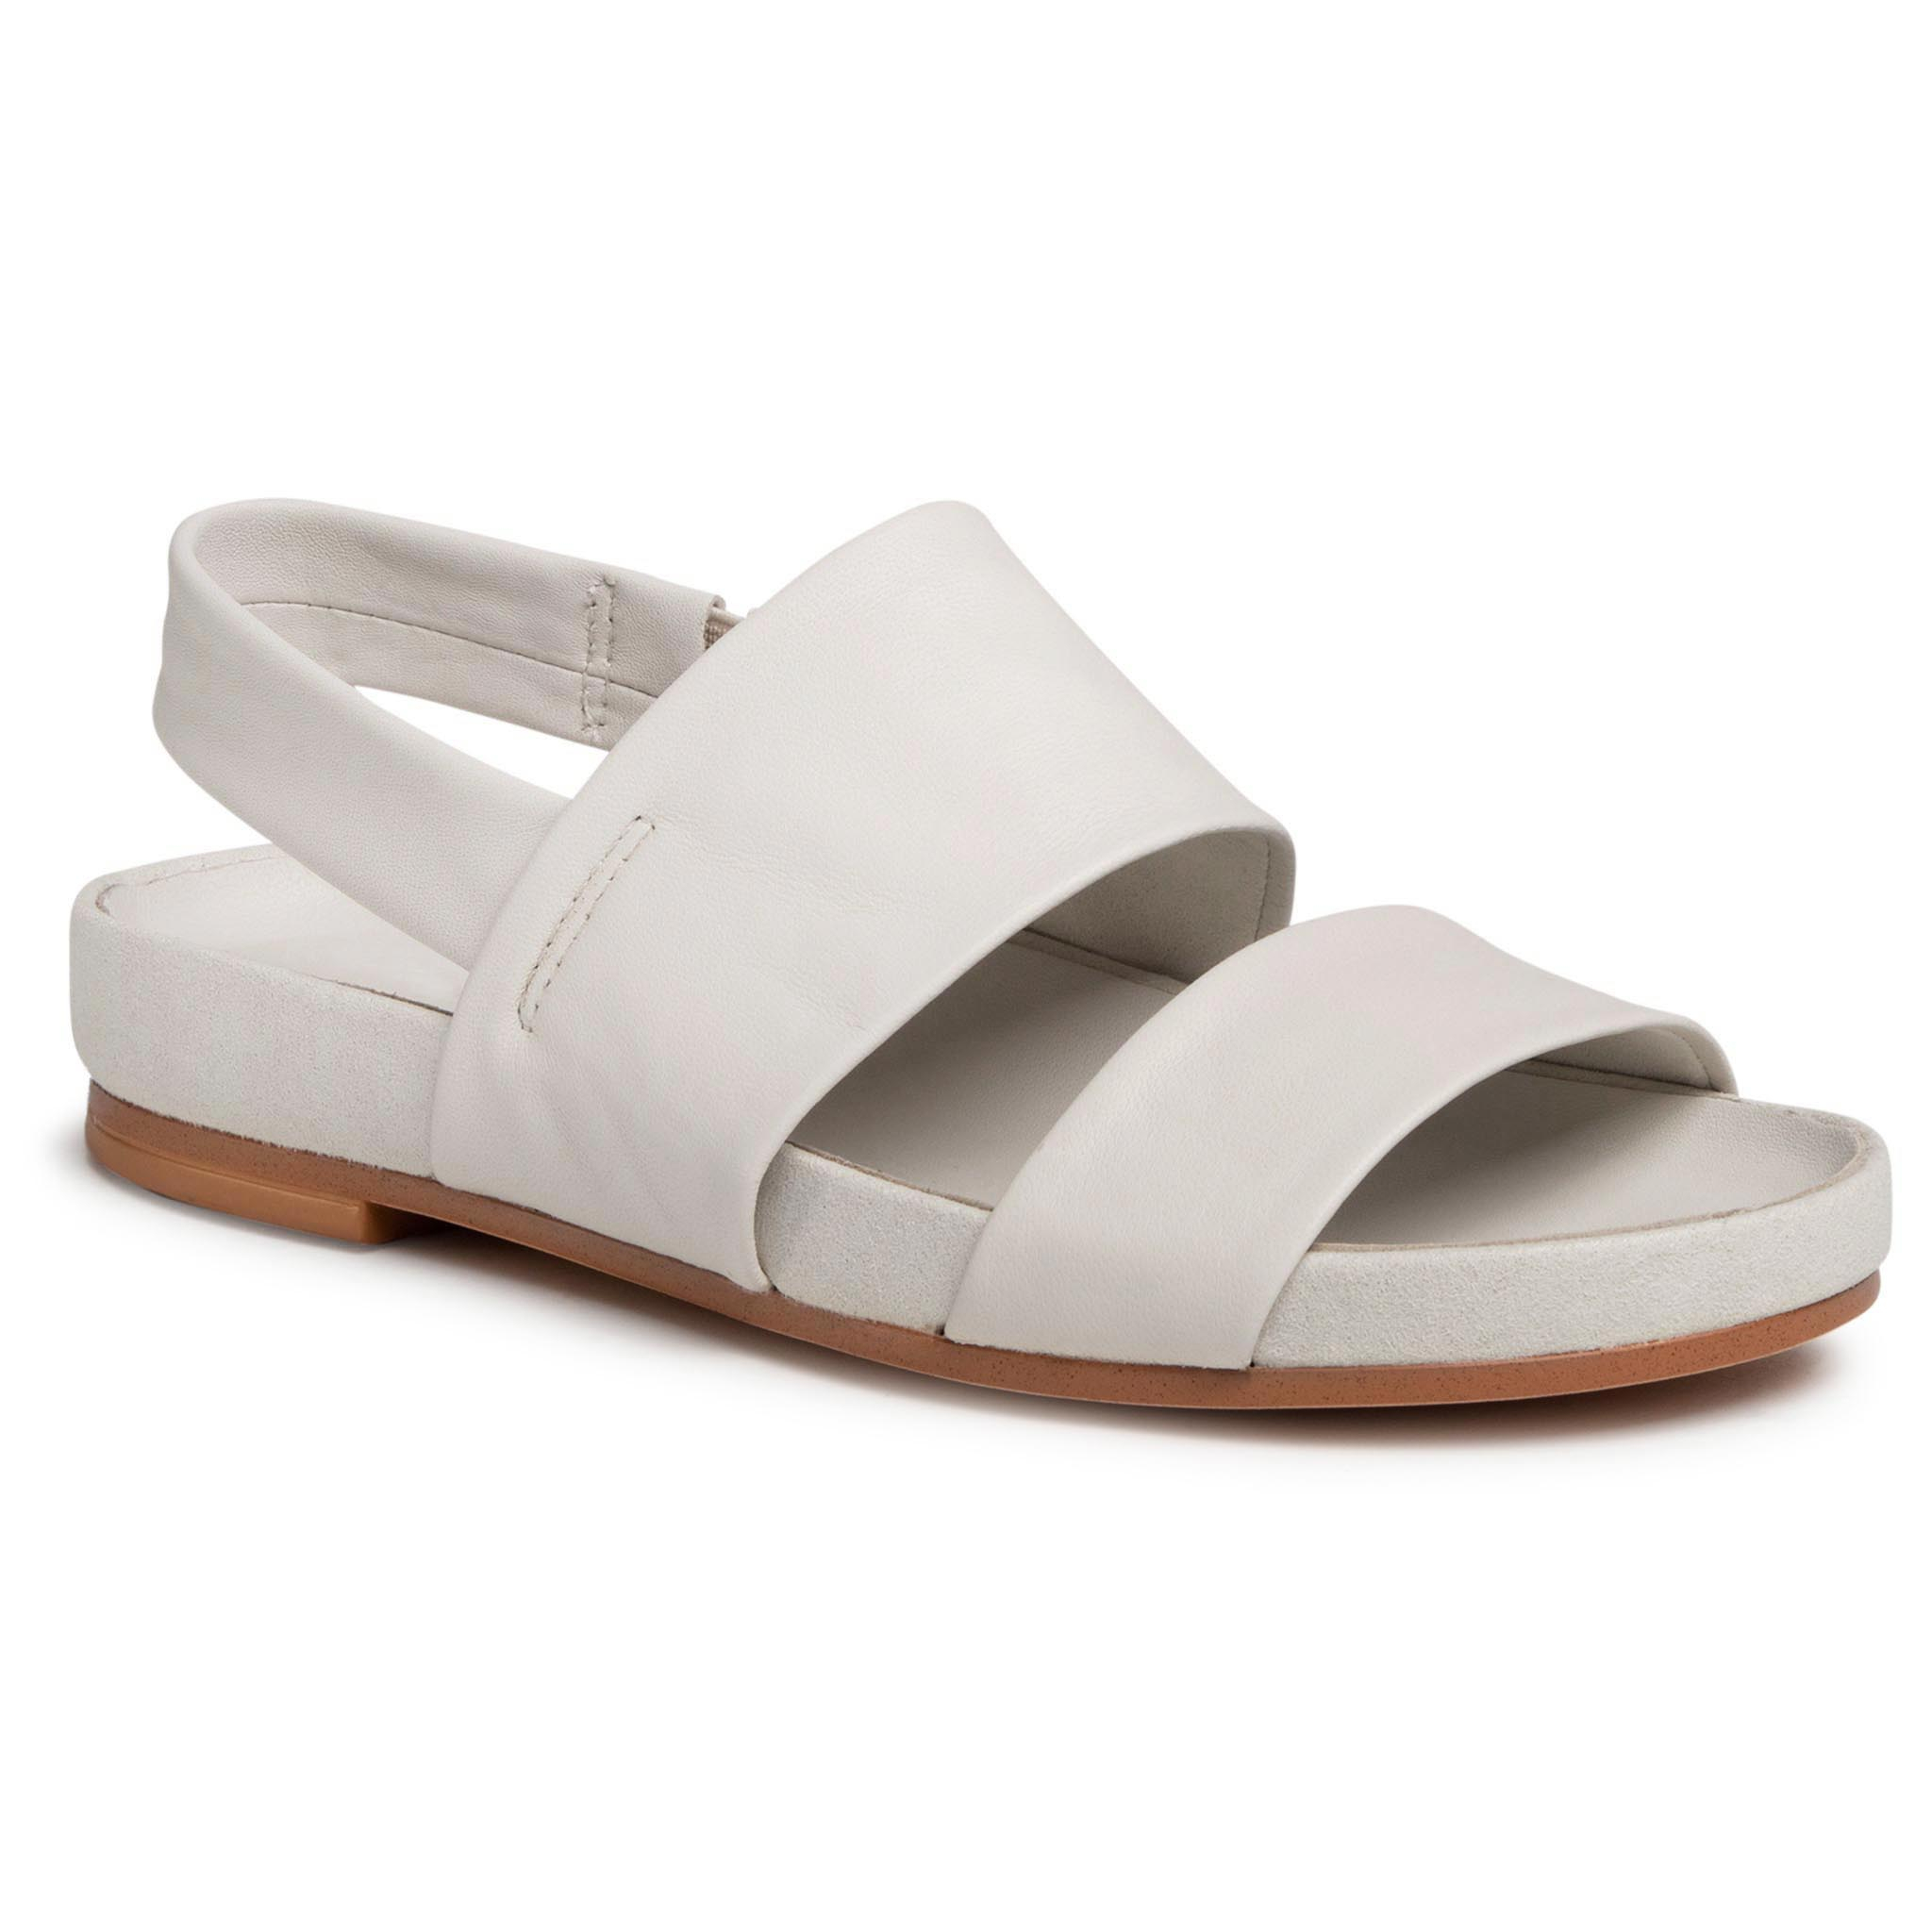 Sandale CLARKS - Pure Strap 261501884 White Leather